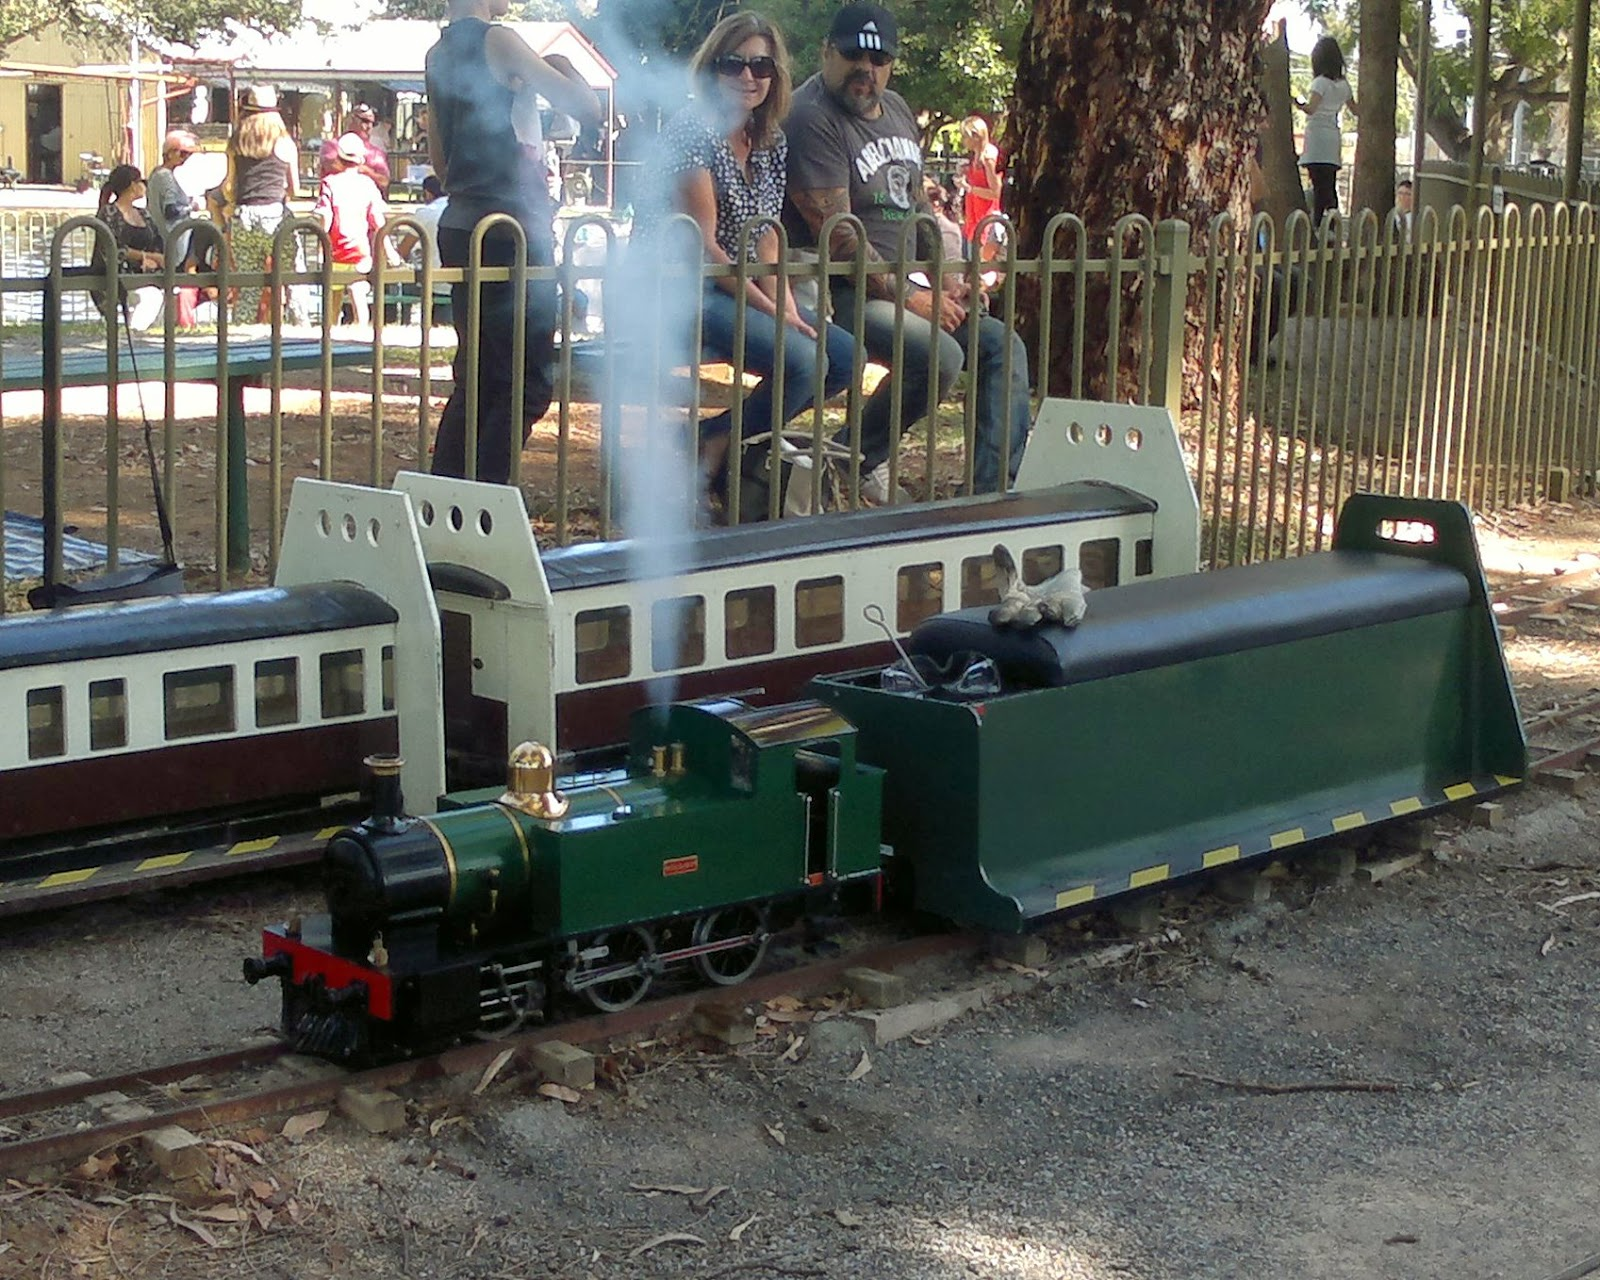 Green steam locomotive steaming up with carriage attached. In the background are two carriages for a larger locomotive.